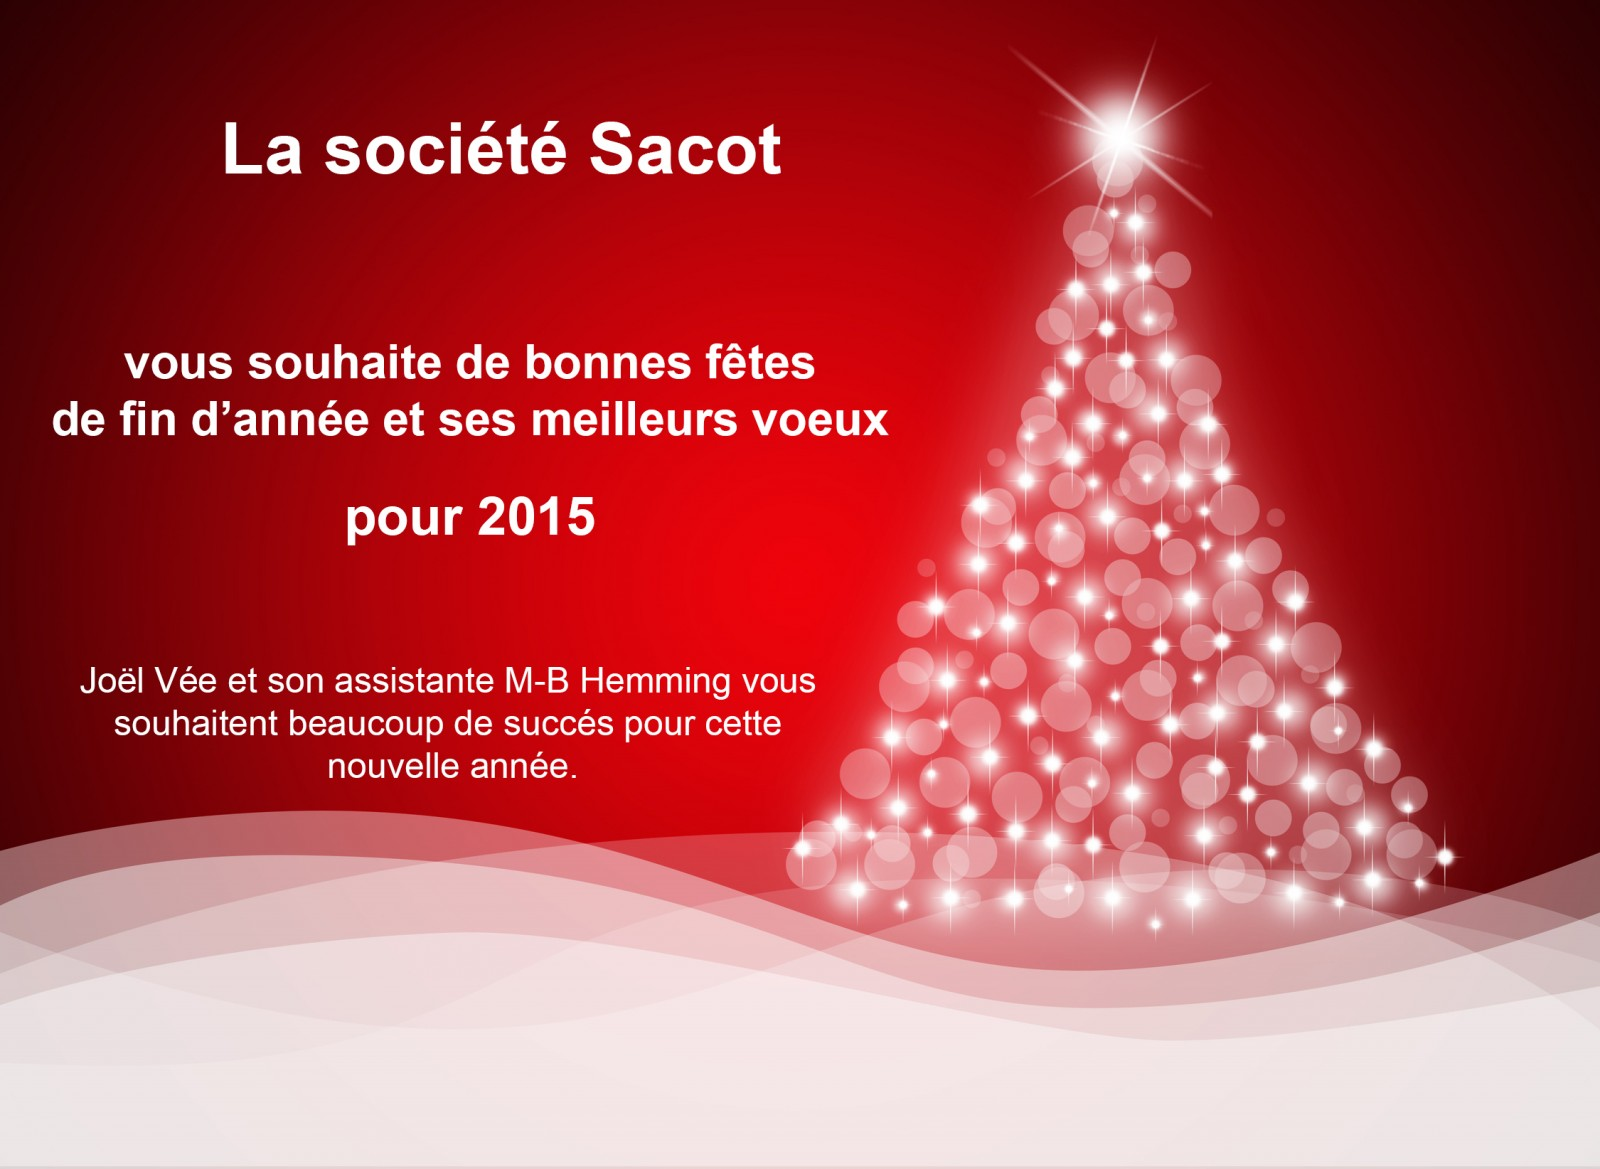 veoux 2015 sacot